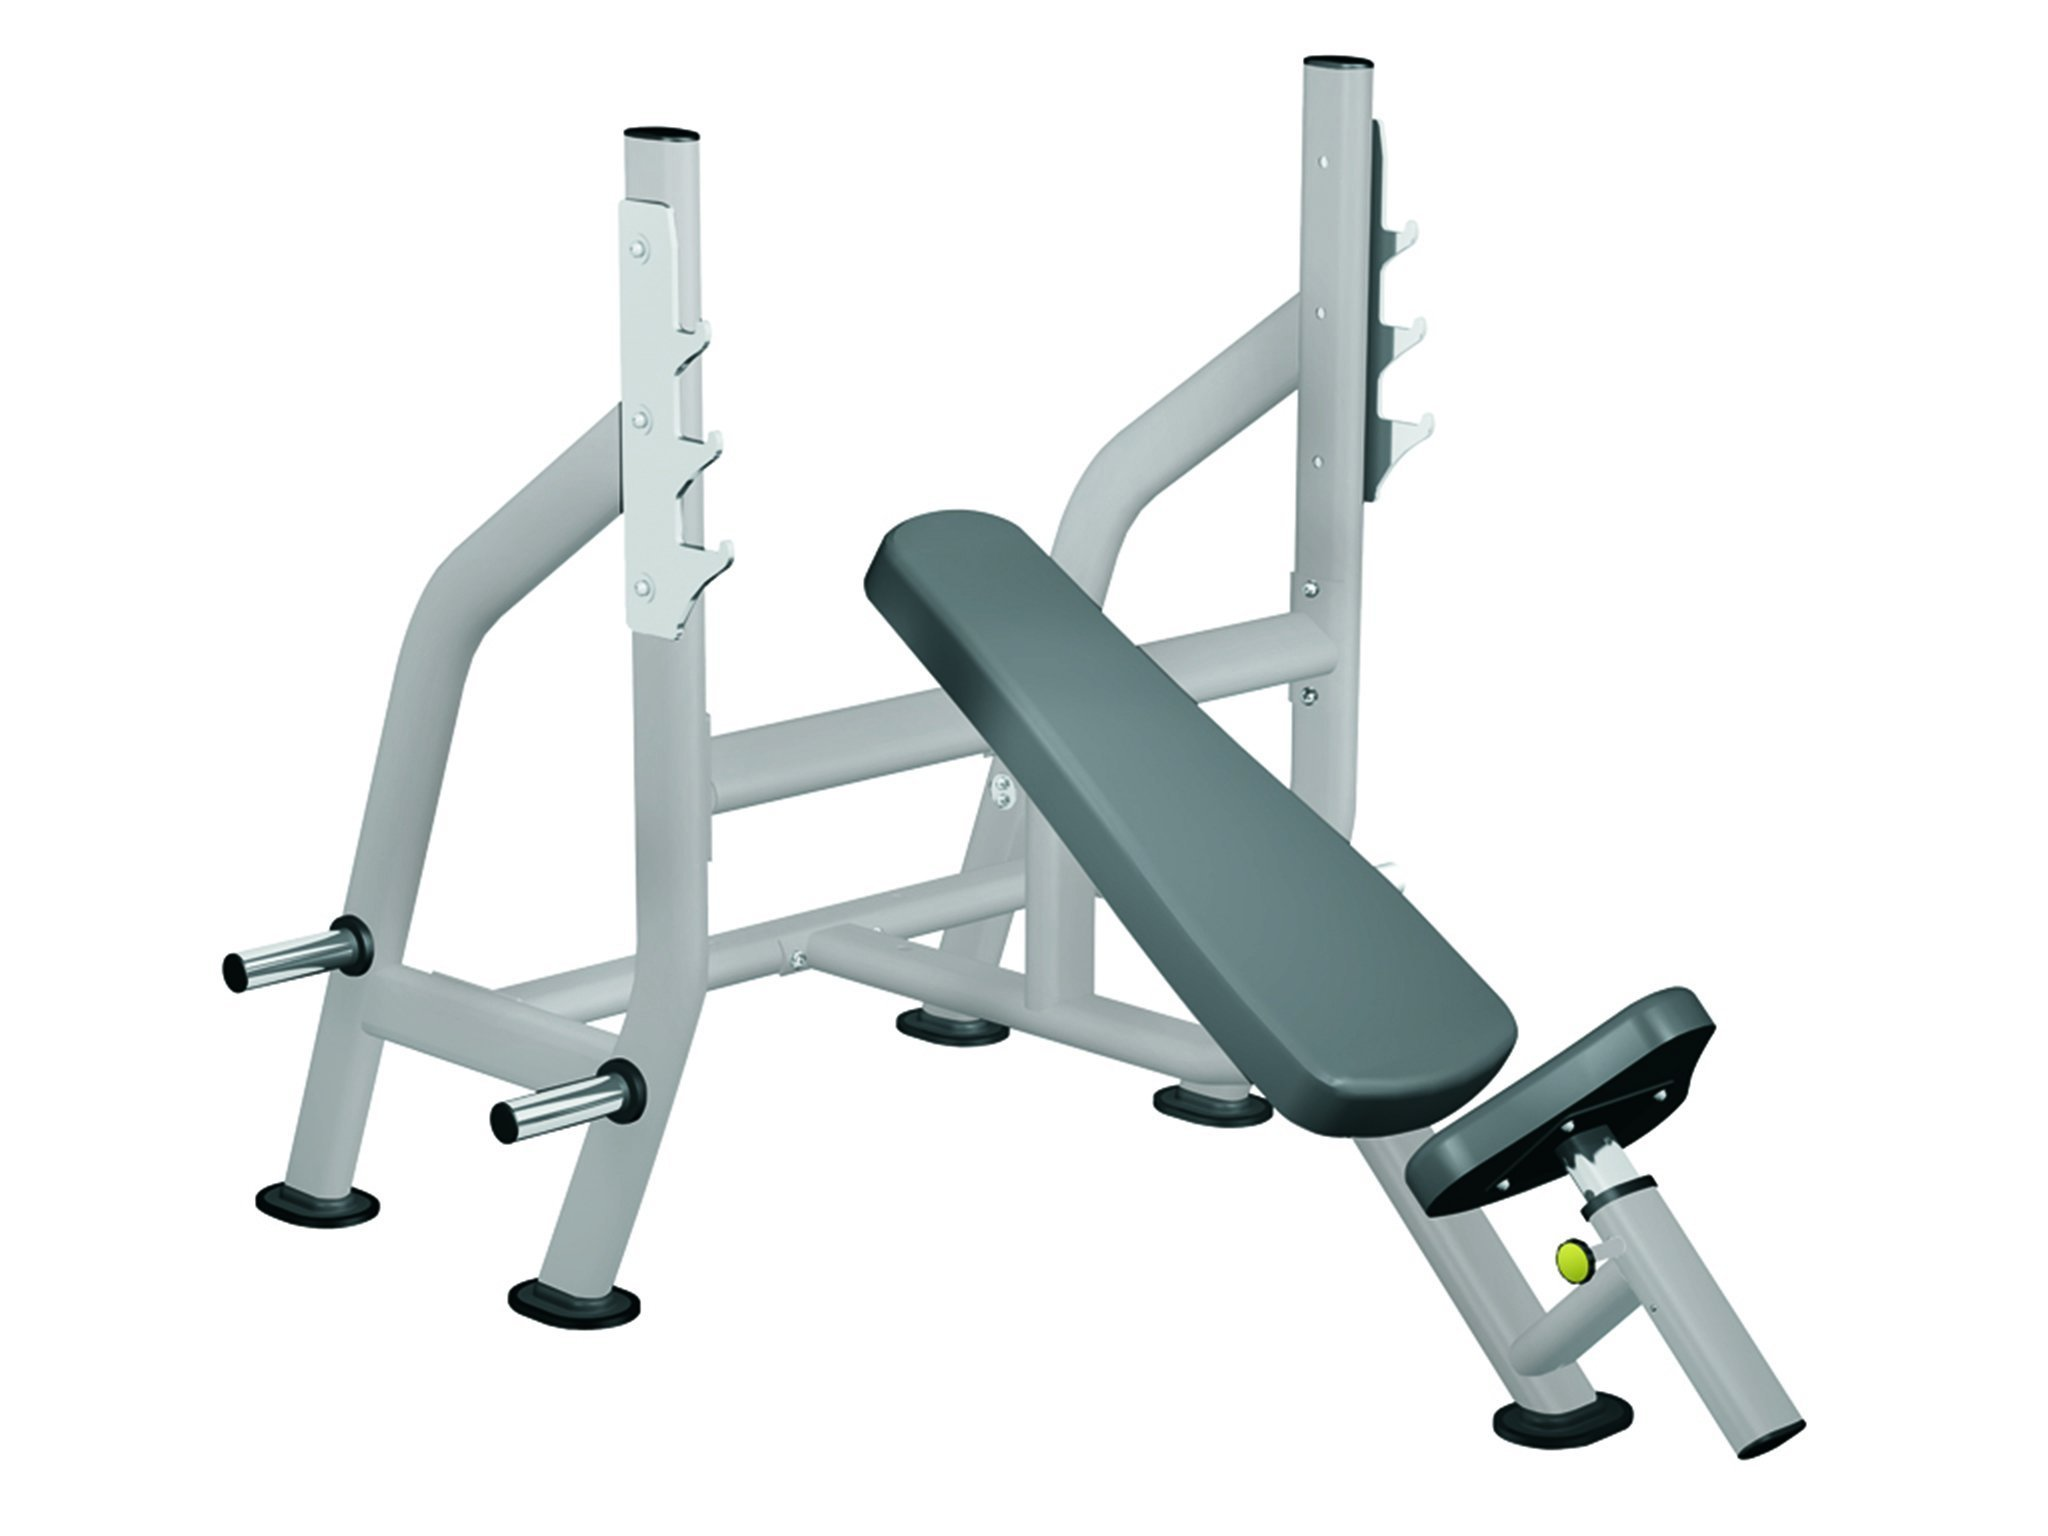 Liberty Fitness Patriot Series Commercial Olympic Incline Bench Incline Bench At Home Gym Commercial Gym Equipment